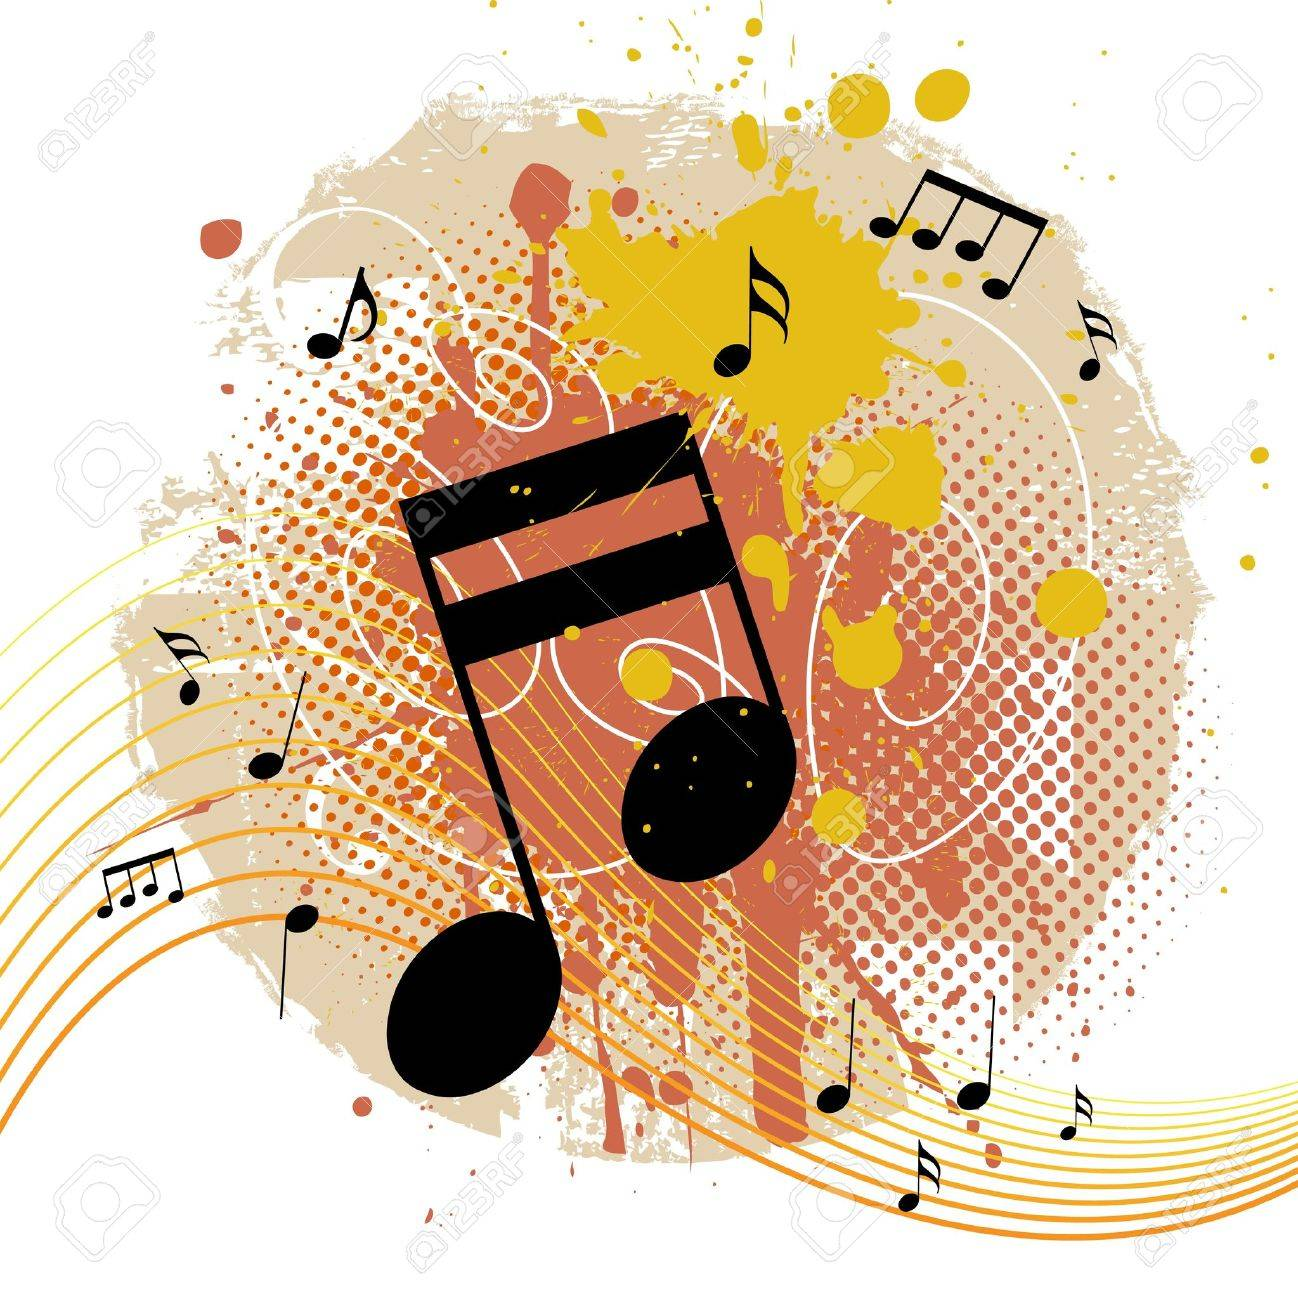 Grunge Background With Tunes Stock Vector